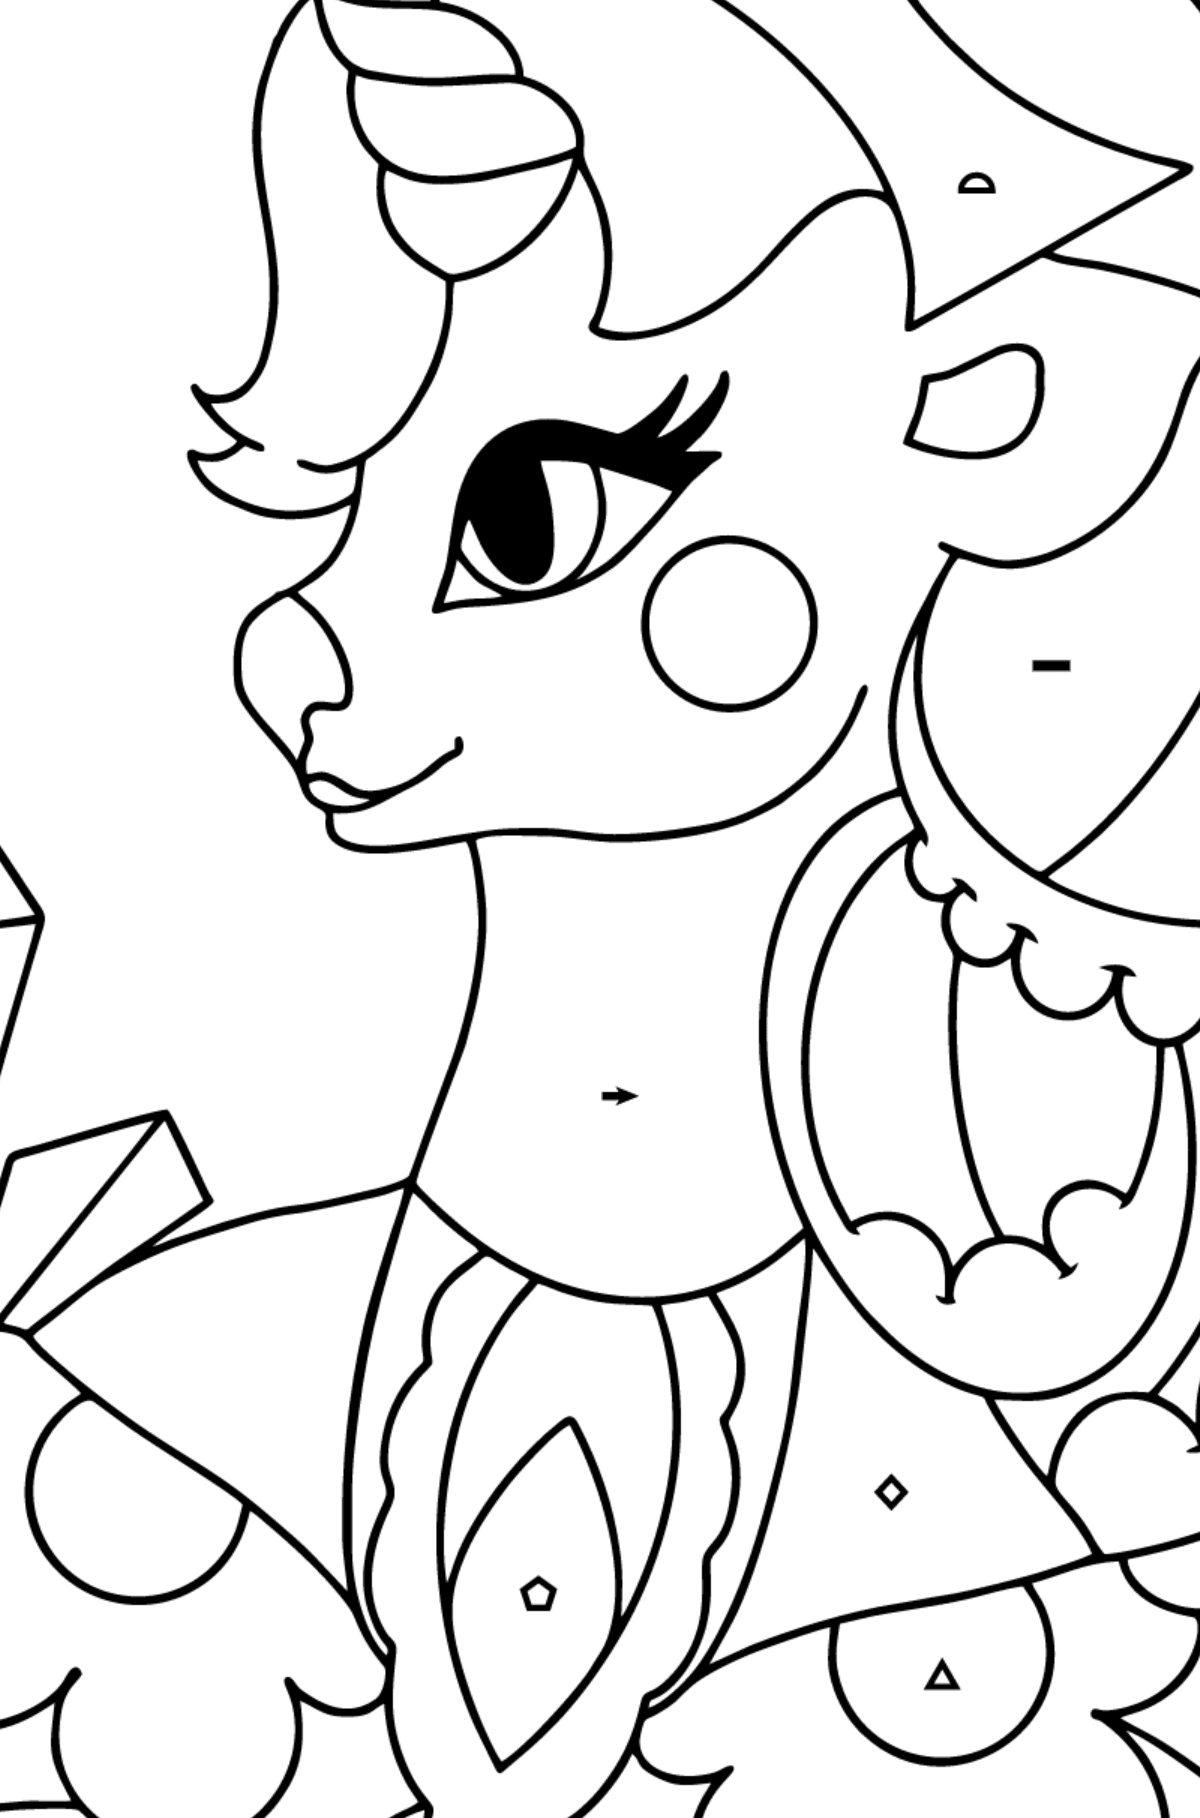 Simple Coloring Page - A Unicorn Queen for Kids  - Color by Symbols and Geometric Shapes